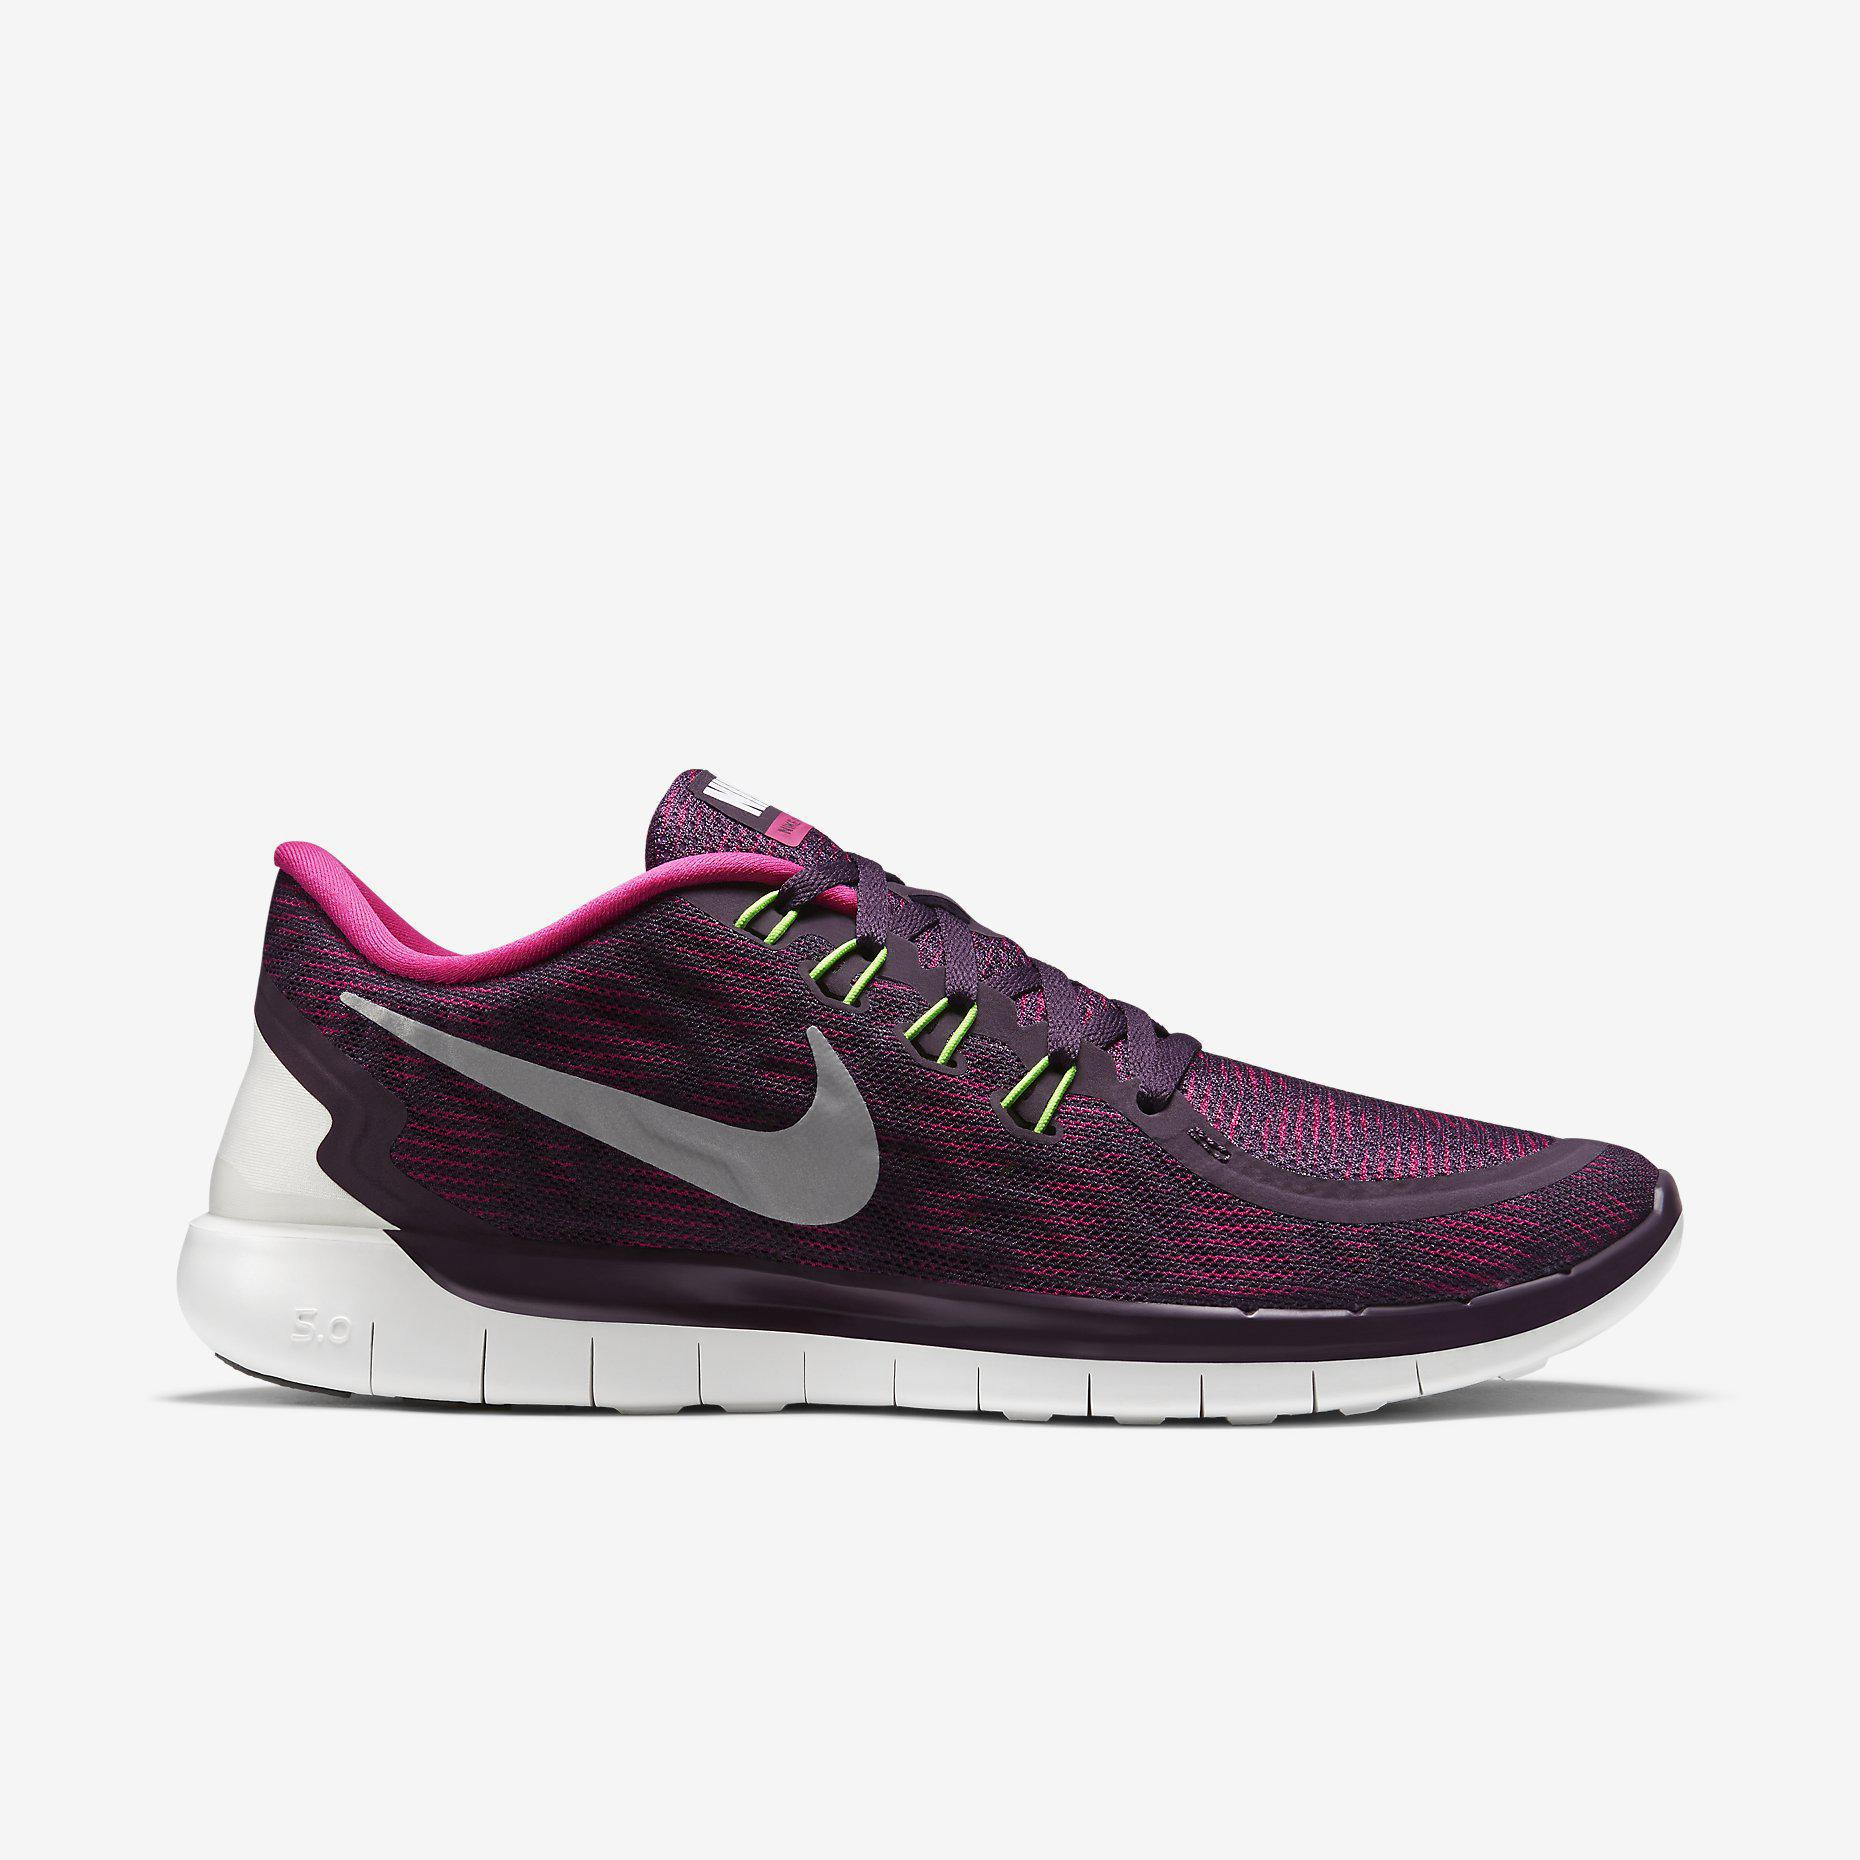 8780502ecd92 Nike Womens Free 5.0+ Print Running Shoes - Purple Pink - Tennisnuts.com